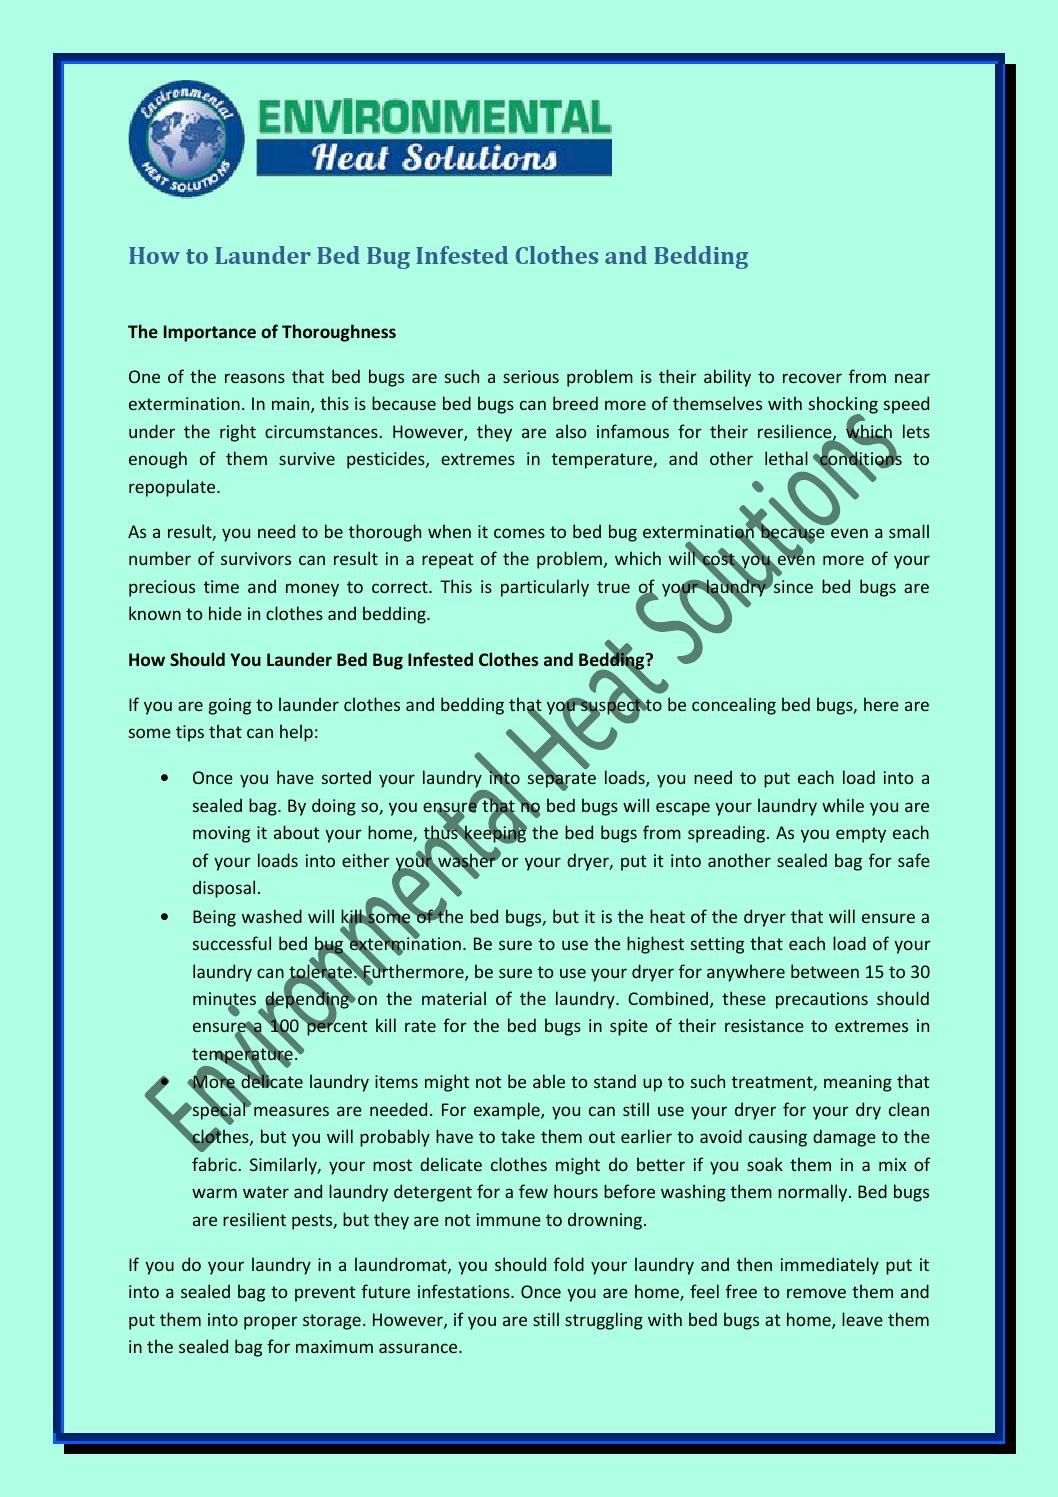 How To Launder Bed Bug Infested Clothes And Bedding With Images